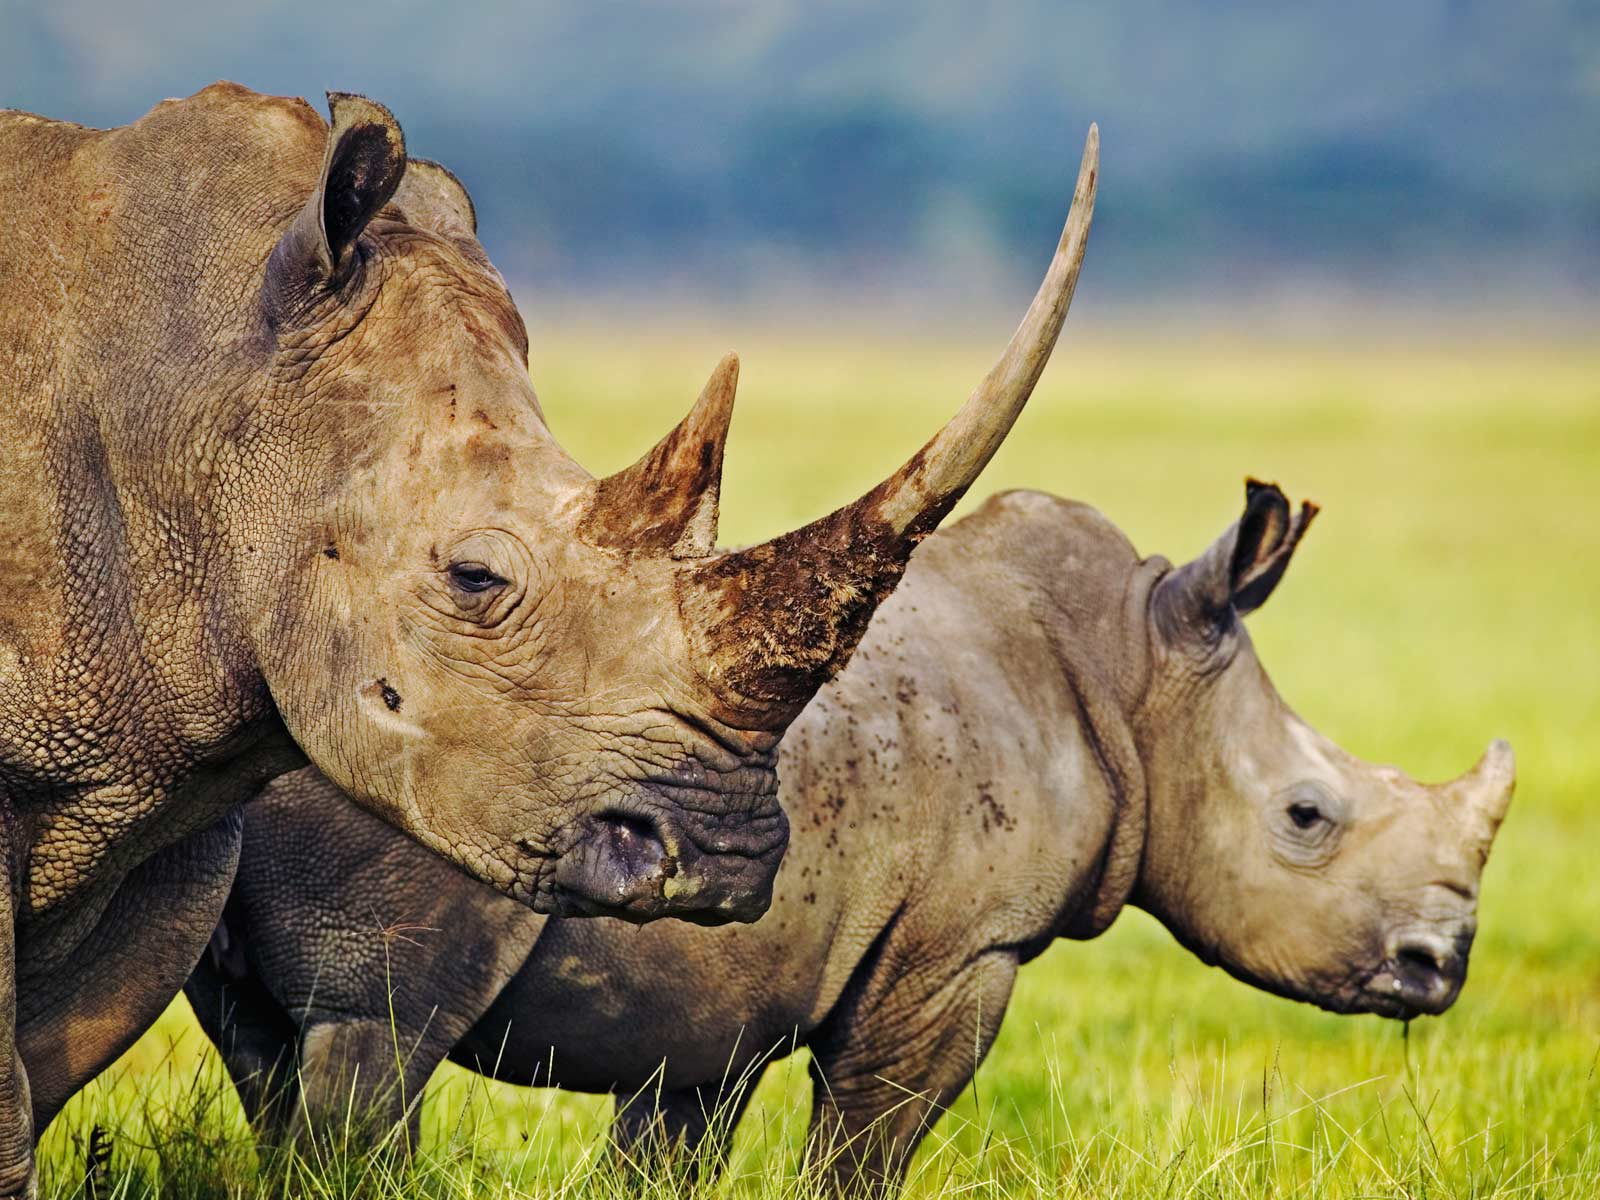 Rhino wallpapers | Animals Library